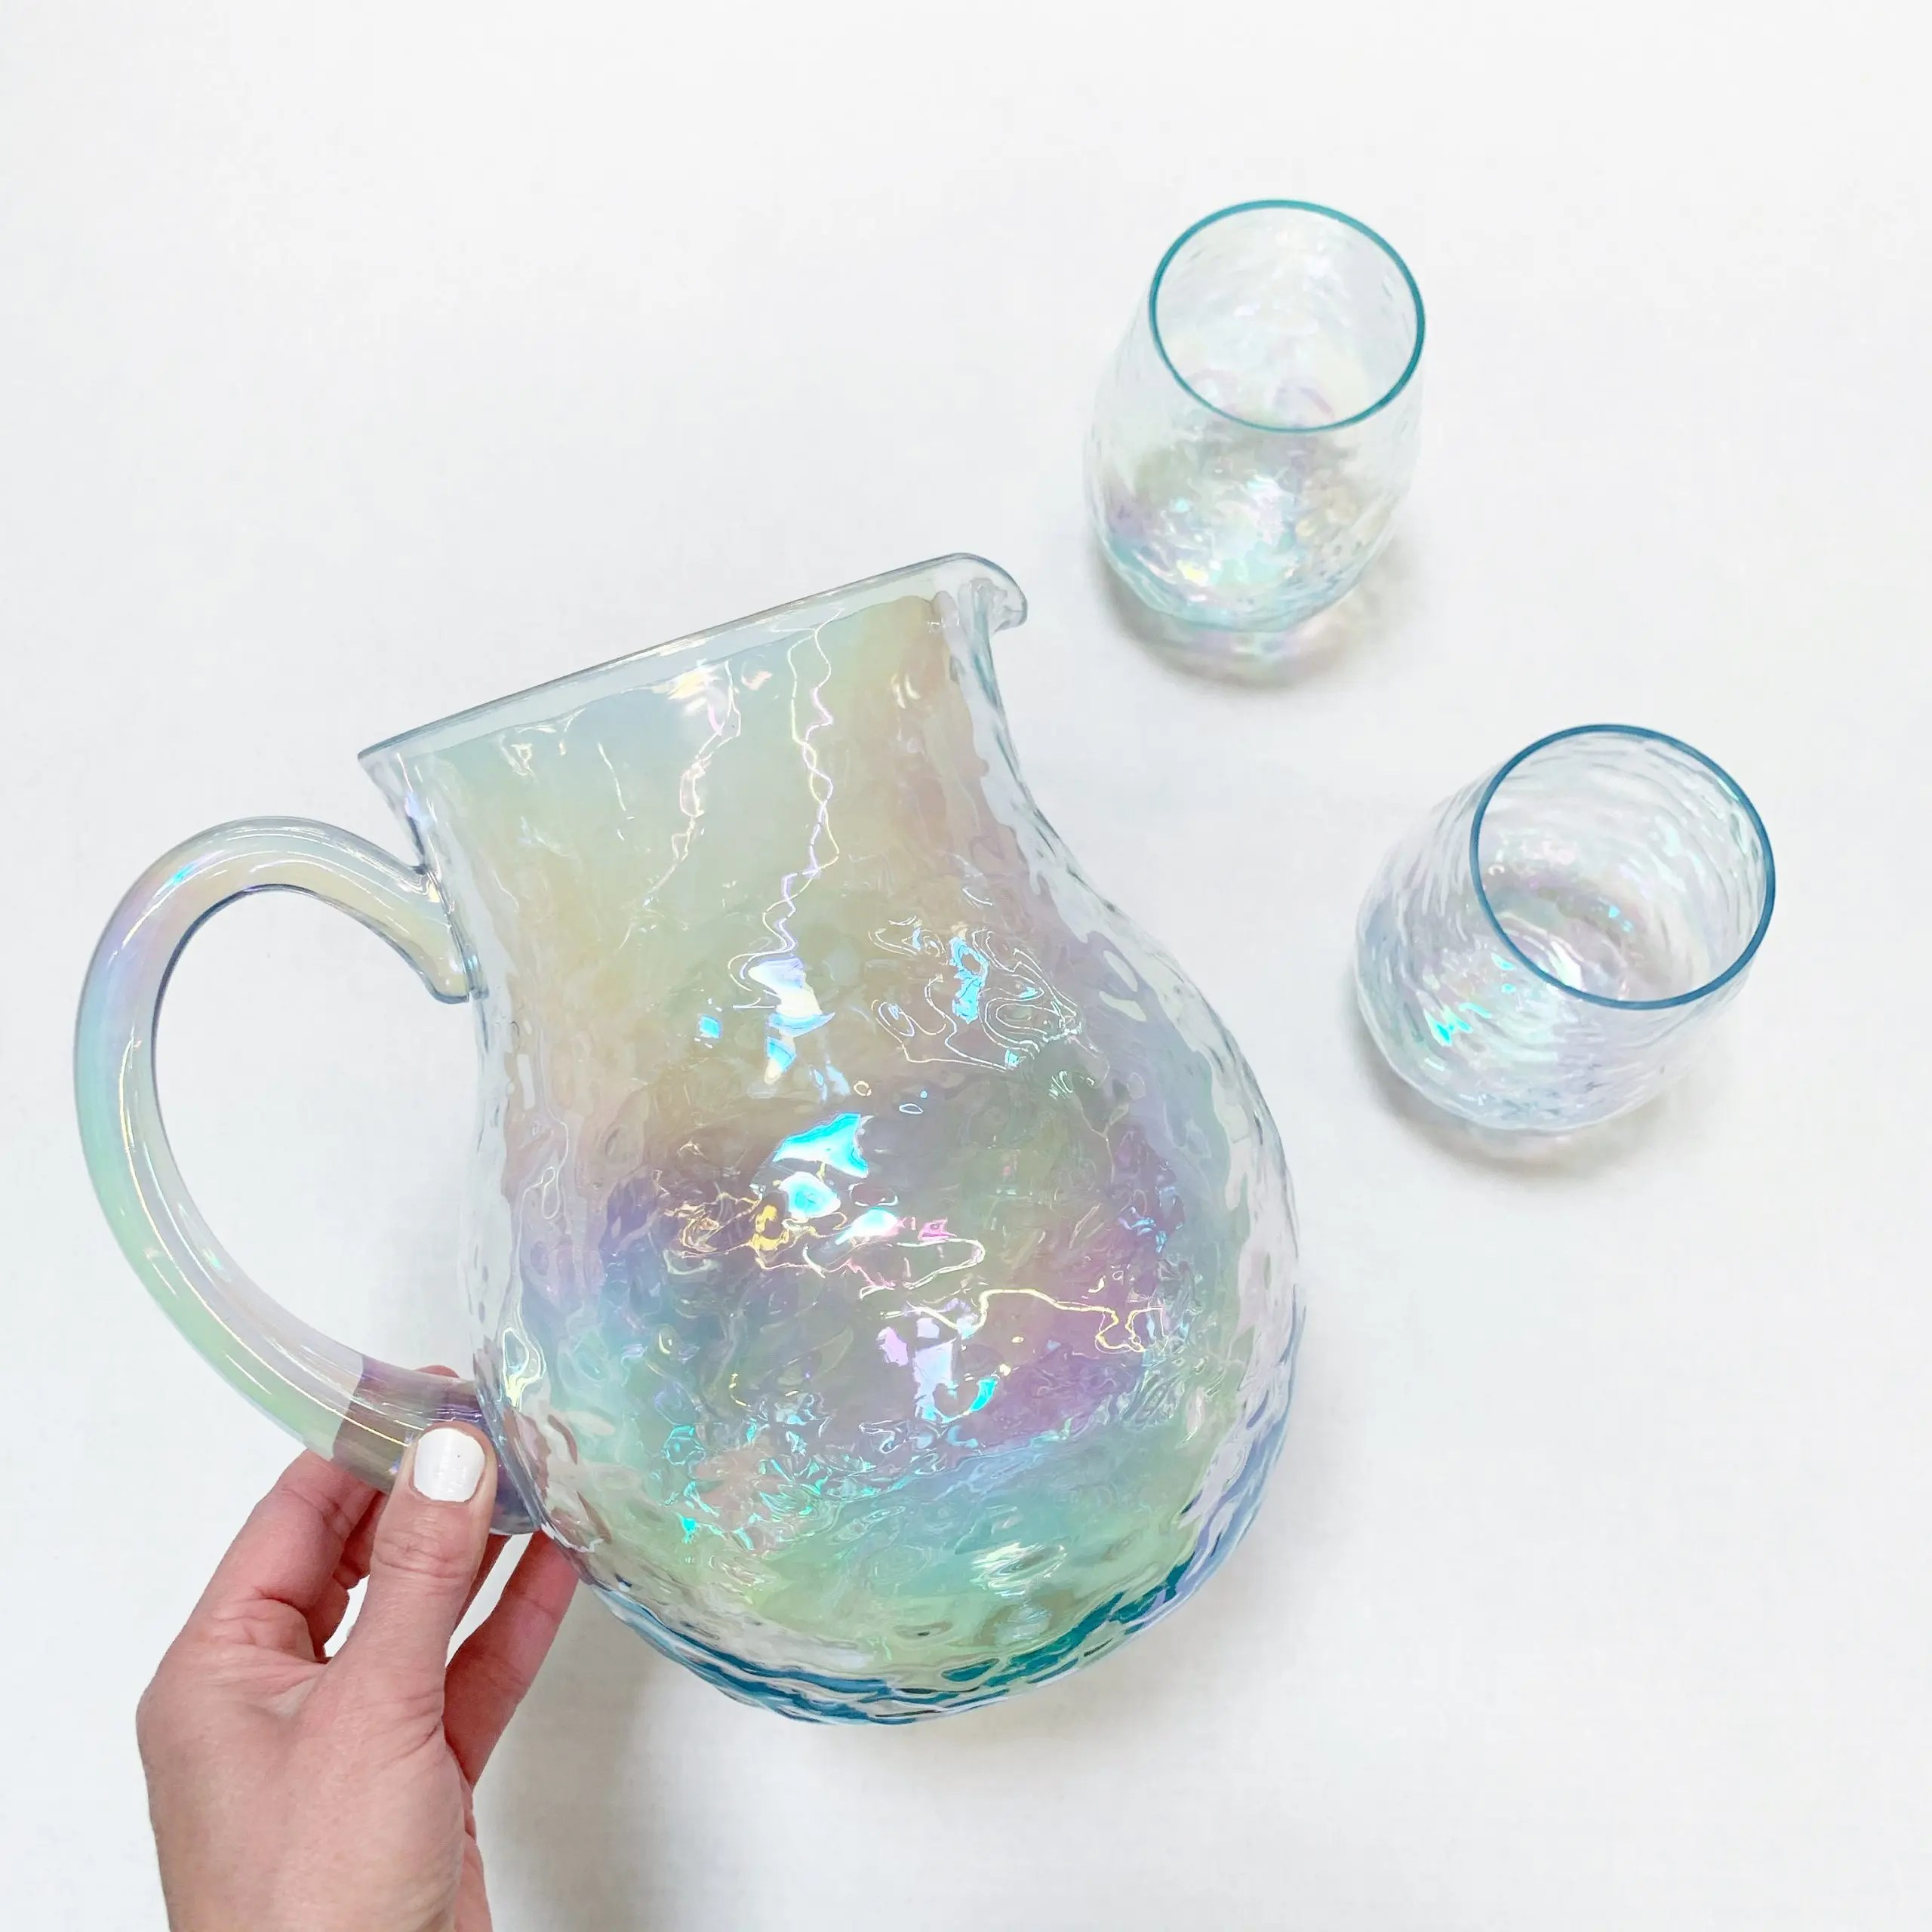 Better Homes & Gardens Acrylic Luster Pitcher and Stemless Wine Glass